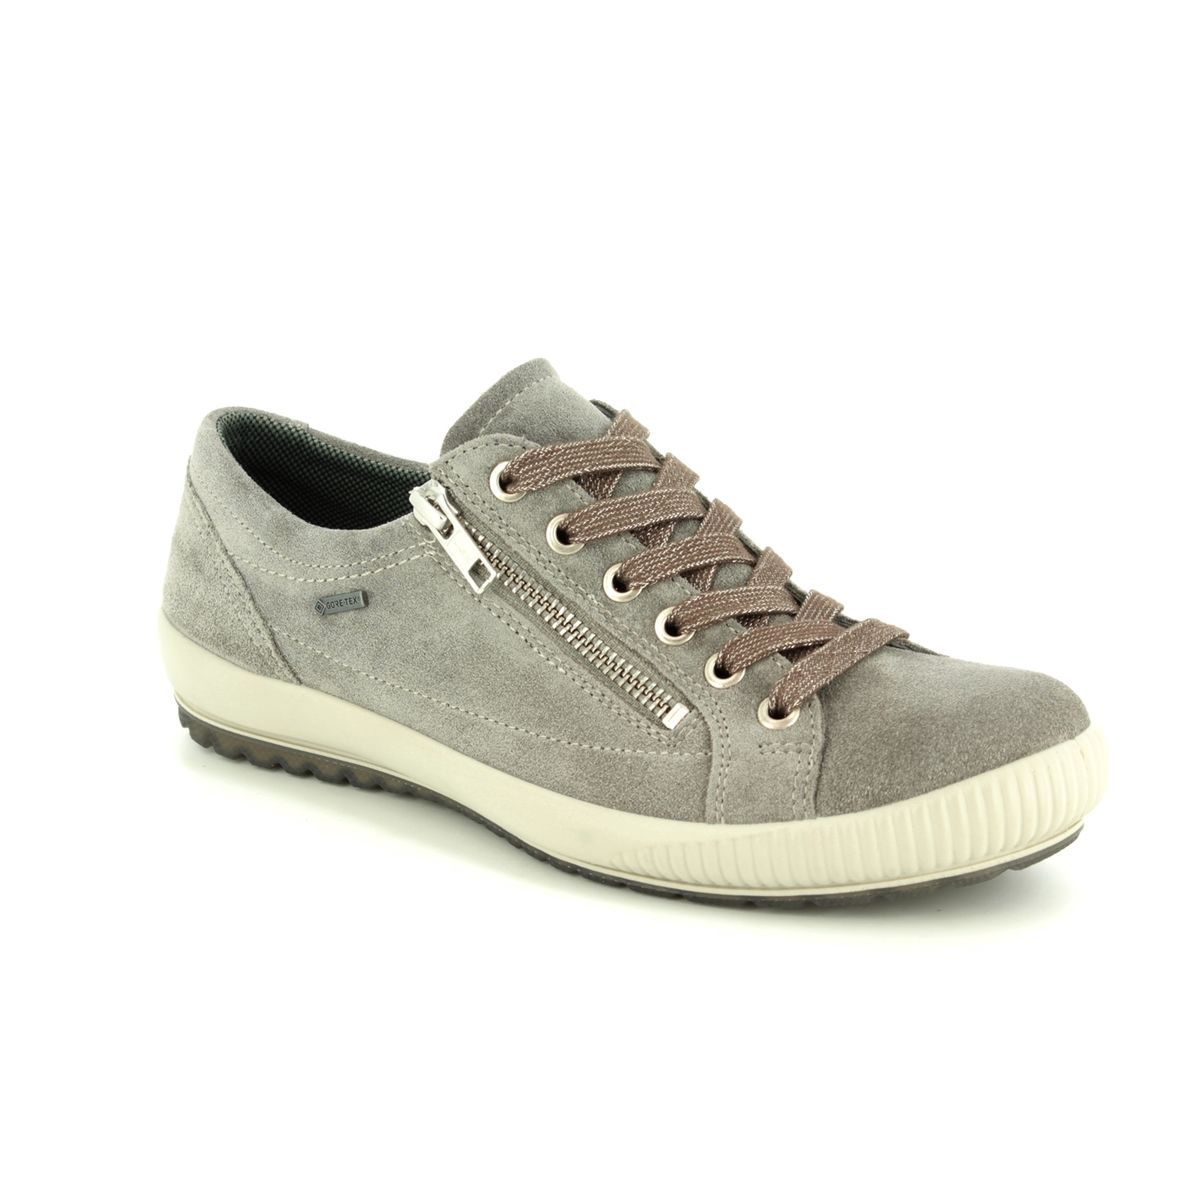 low price new styles outlet online 00616/24 Tanaro Zip Gtx at Begg Shoes & Bags